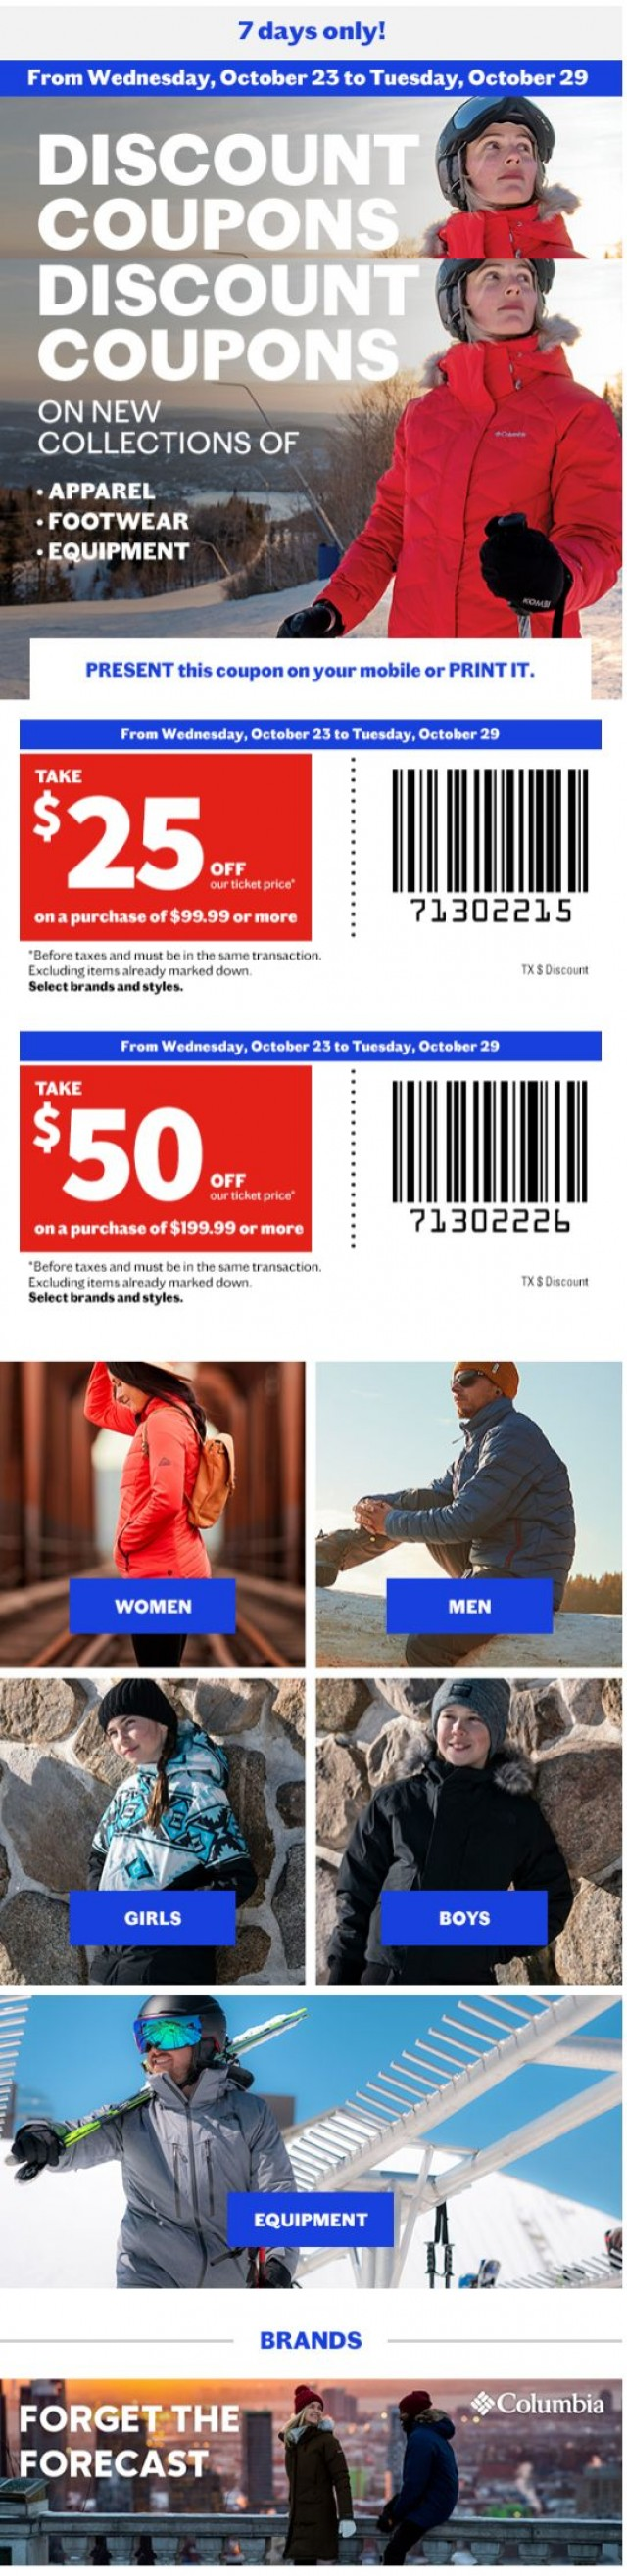 Coupon for: Sports Experts - Discount coupons on new collections